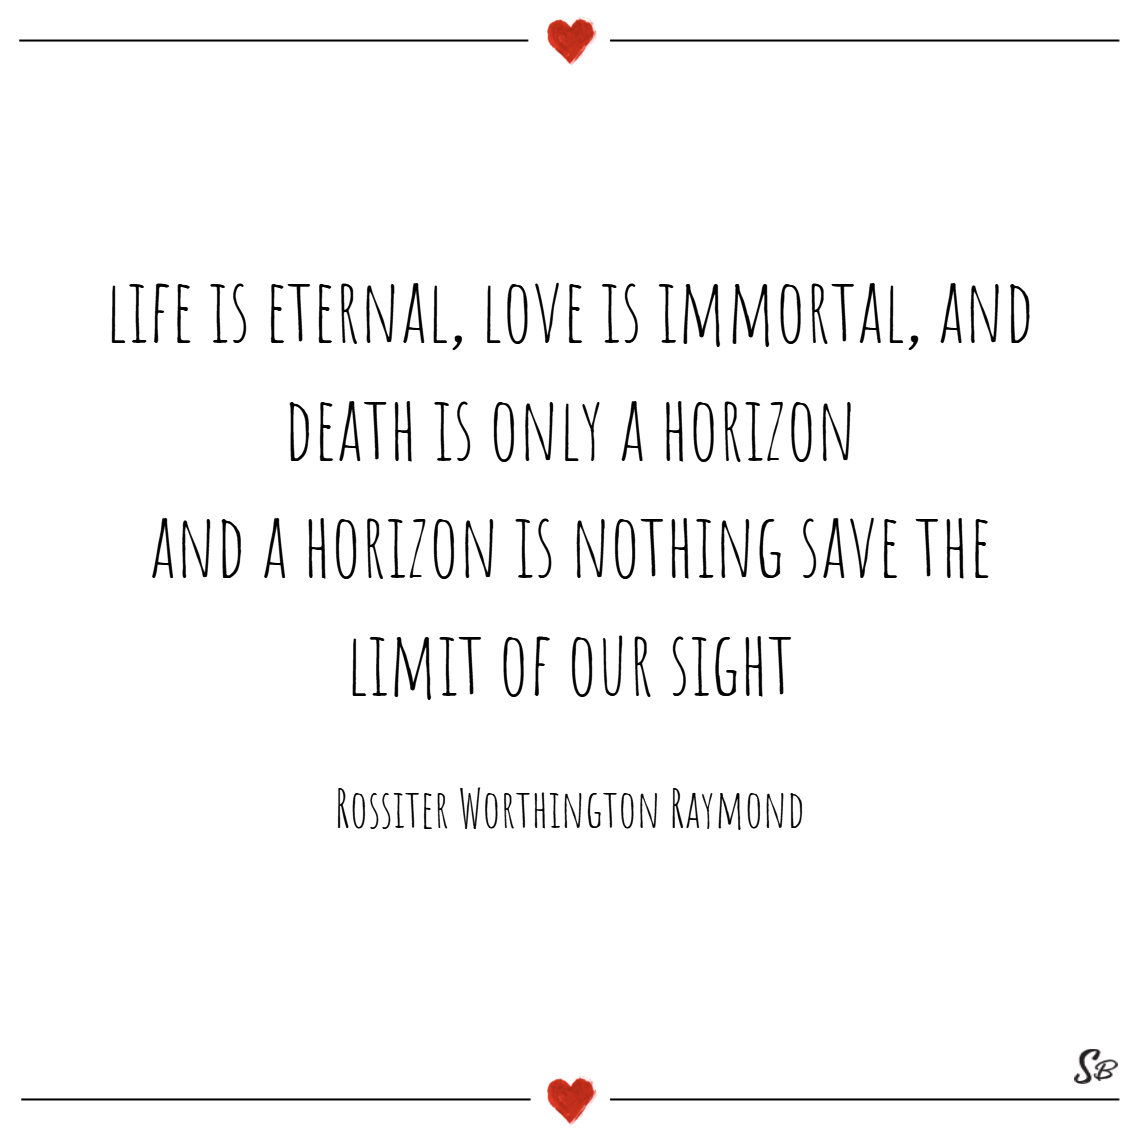 Life is eternal, love is immortal, and death is only a horizon; and a horizon is nothing save the limit of our sight. – rossiter worthington raymond